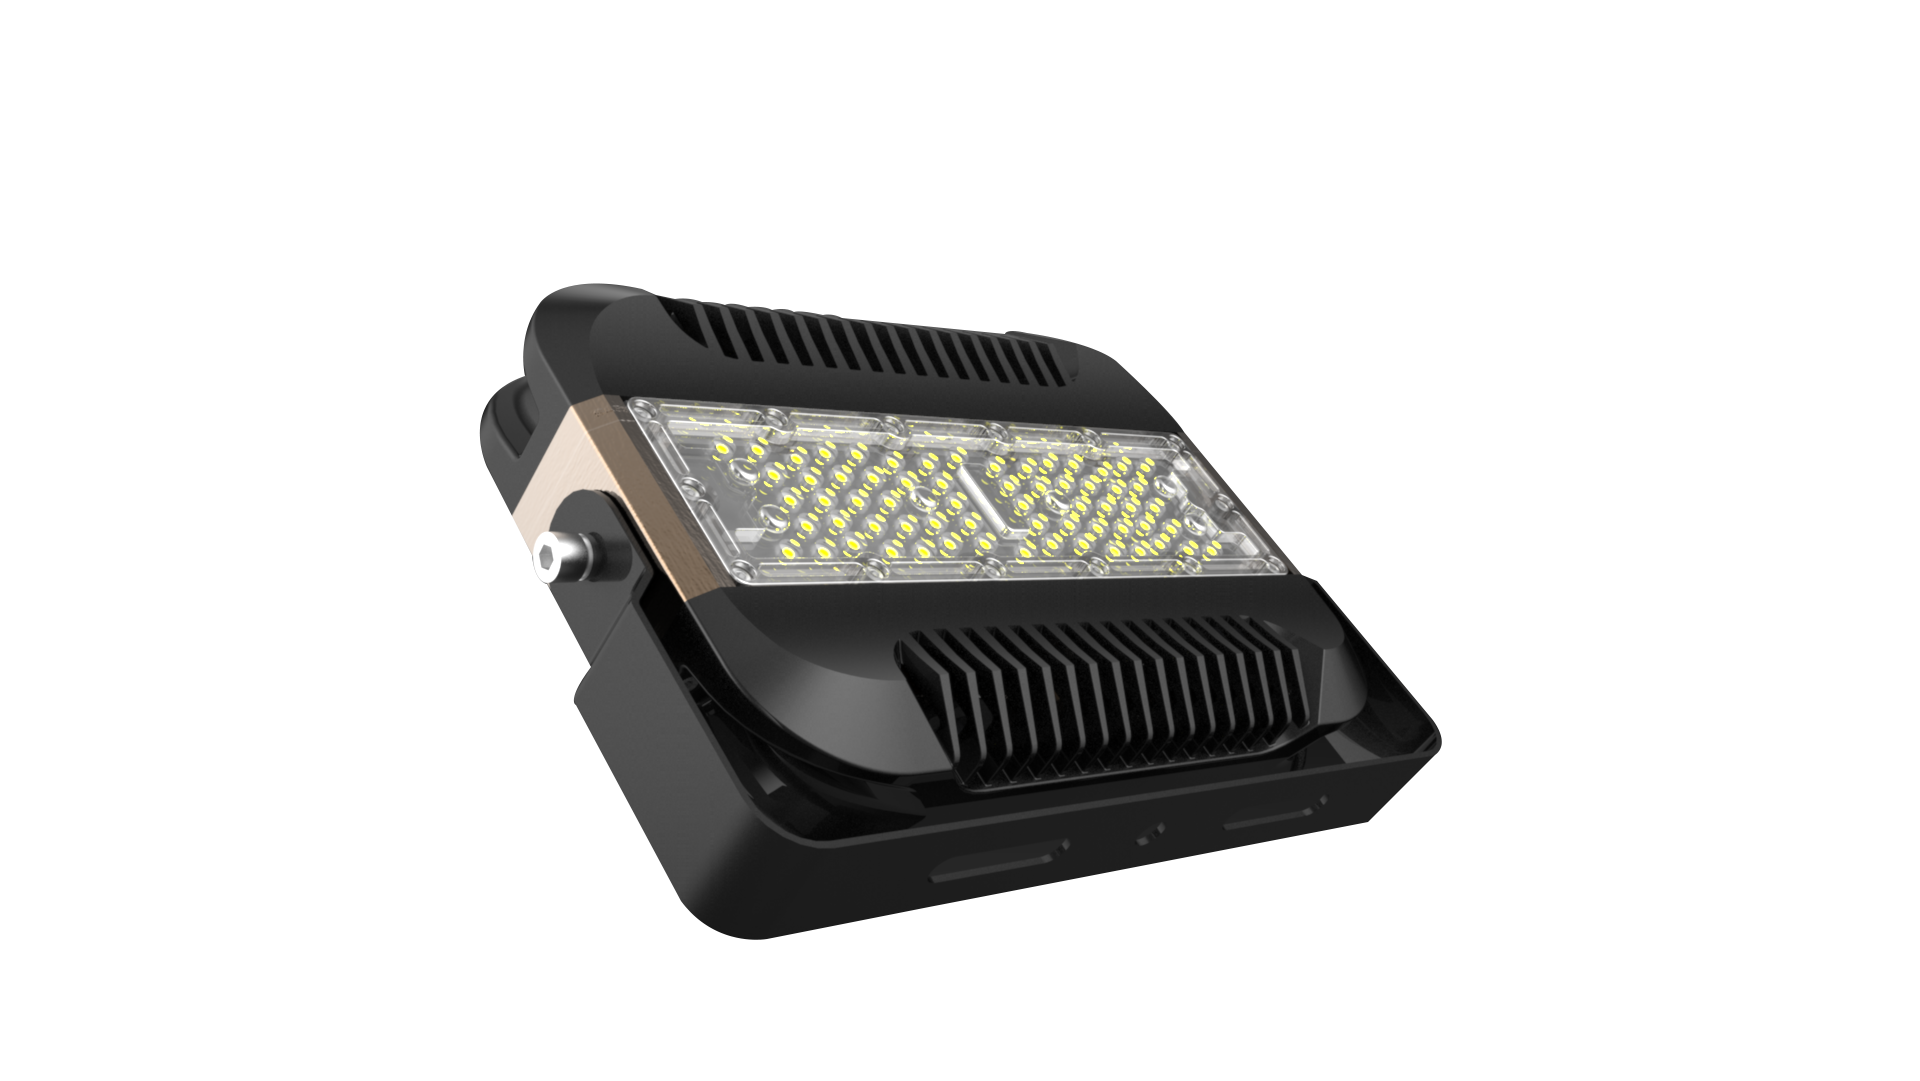 40W High Power LED Outdoor Industrial Flood Light 120lm/W LED Floodlight With CE RoHS